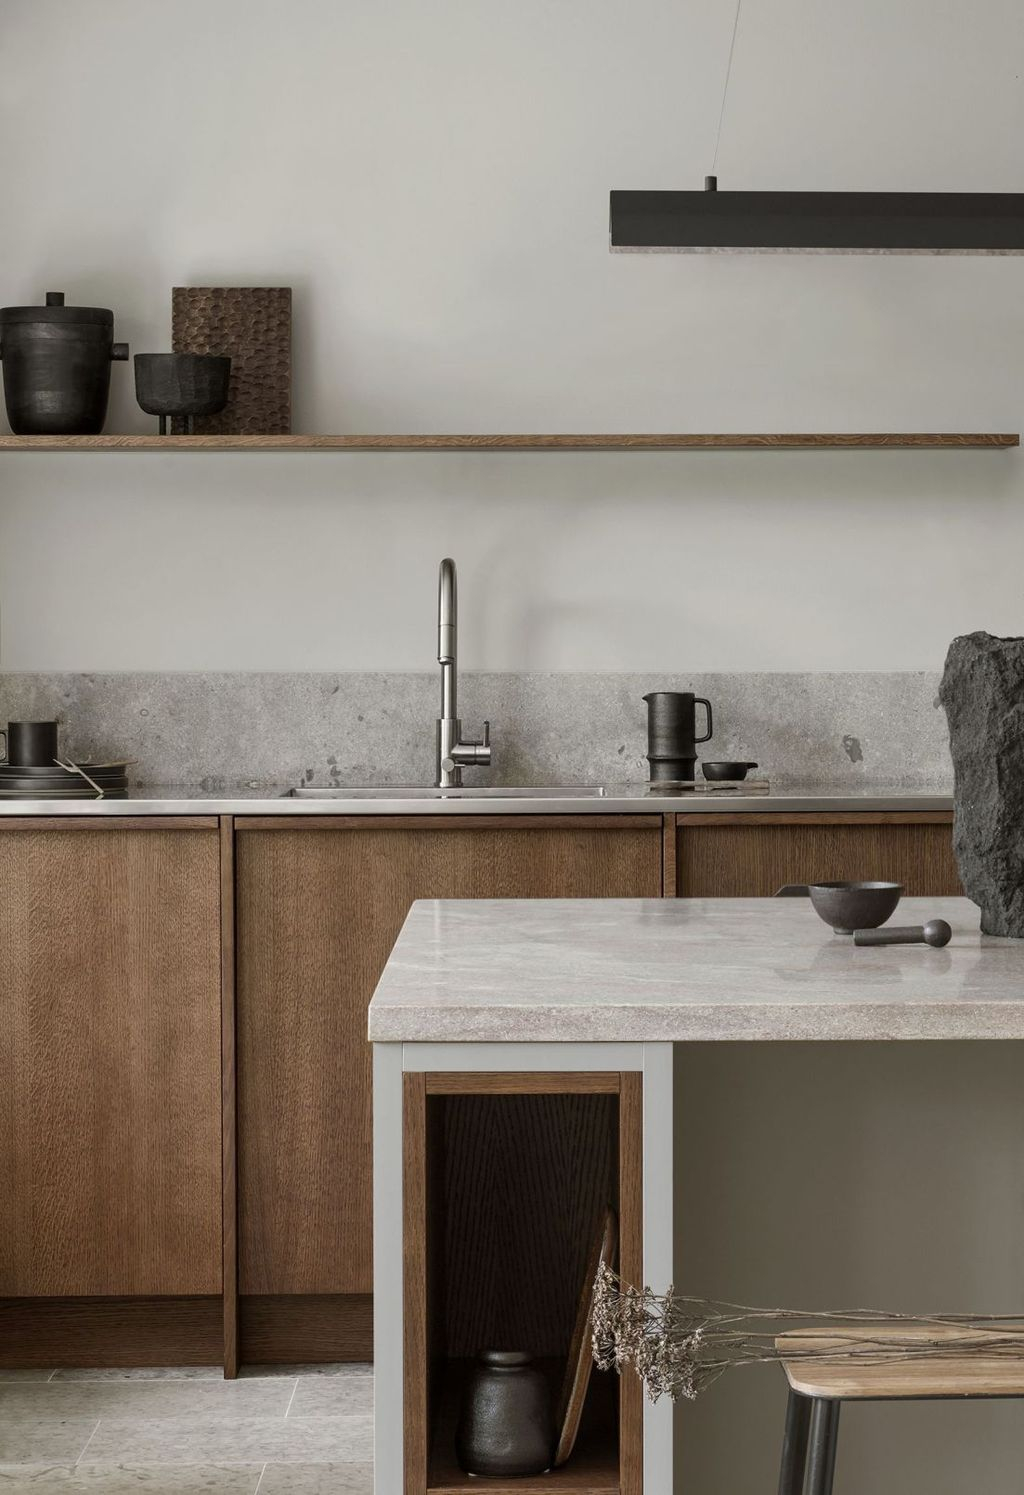 Elegant Minimalist Kitchen Design Ideas For Small Space To Try 10